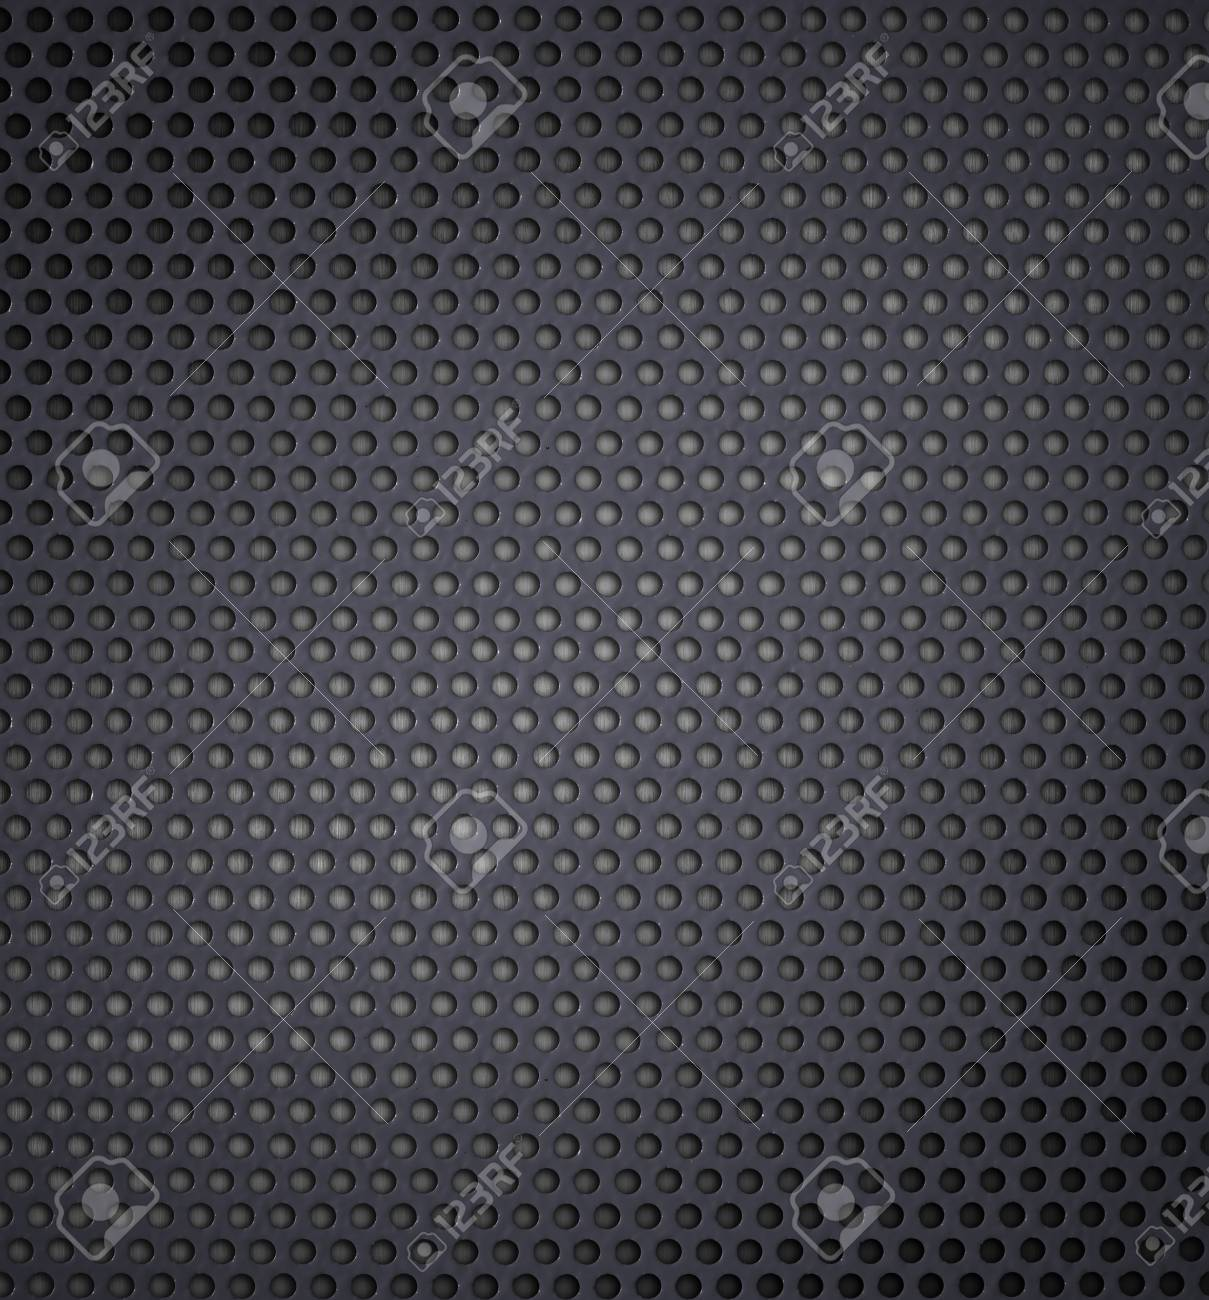 metal holed or perforated grid background Stock Photo - 7975713